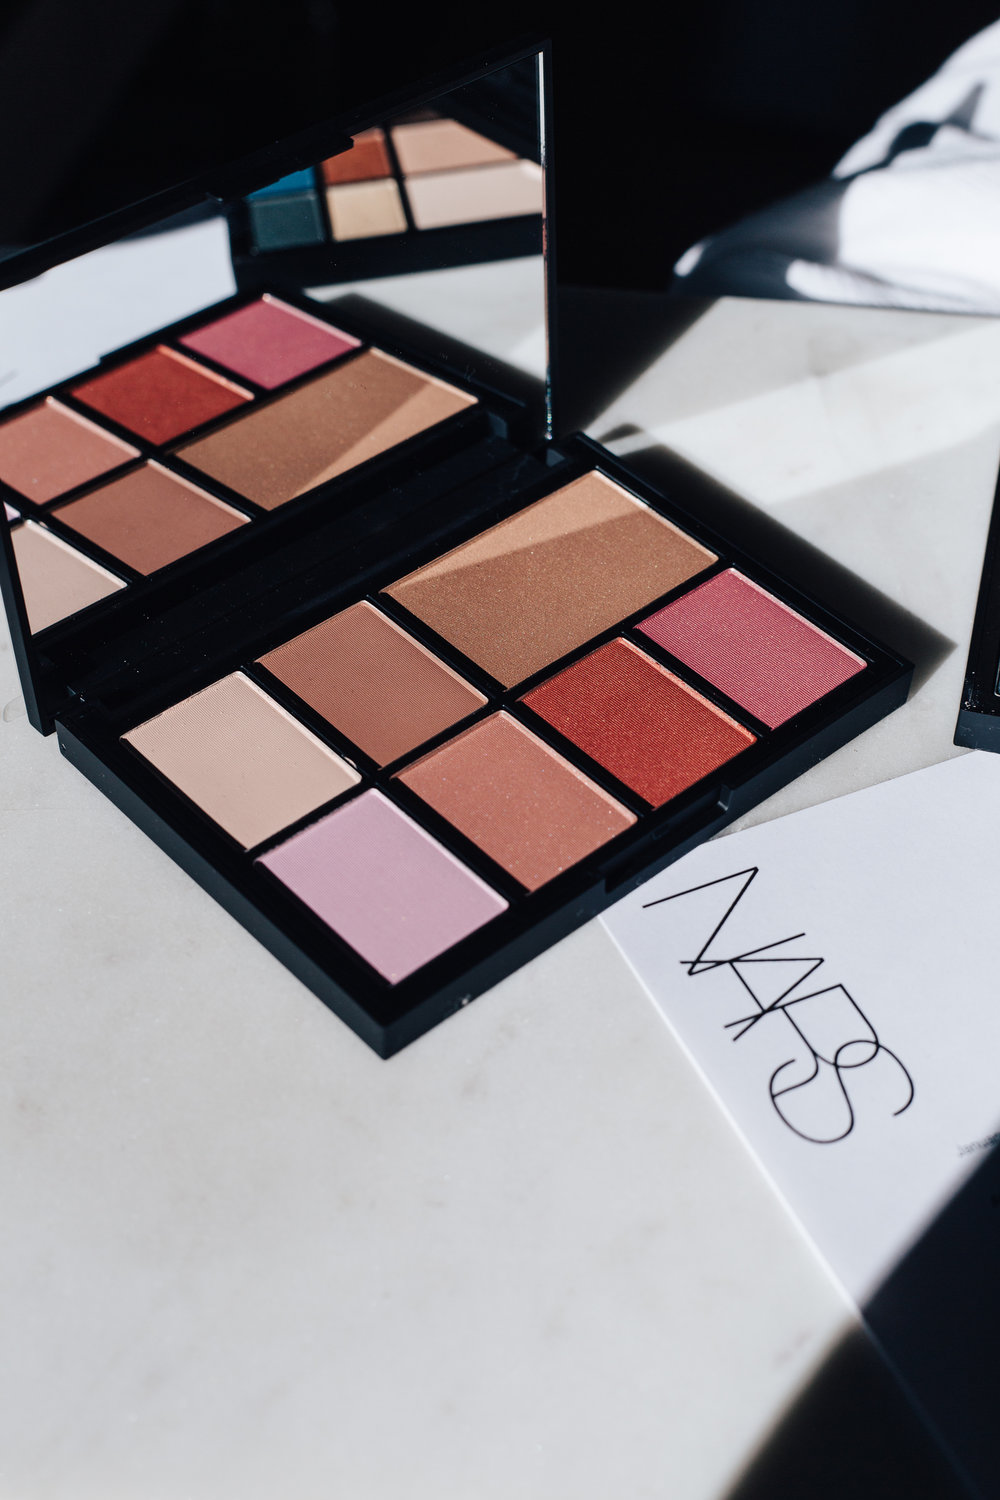 nars-cosmetics-abby-johnson-ruscansky